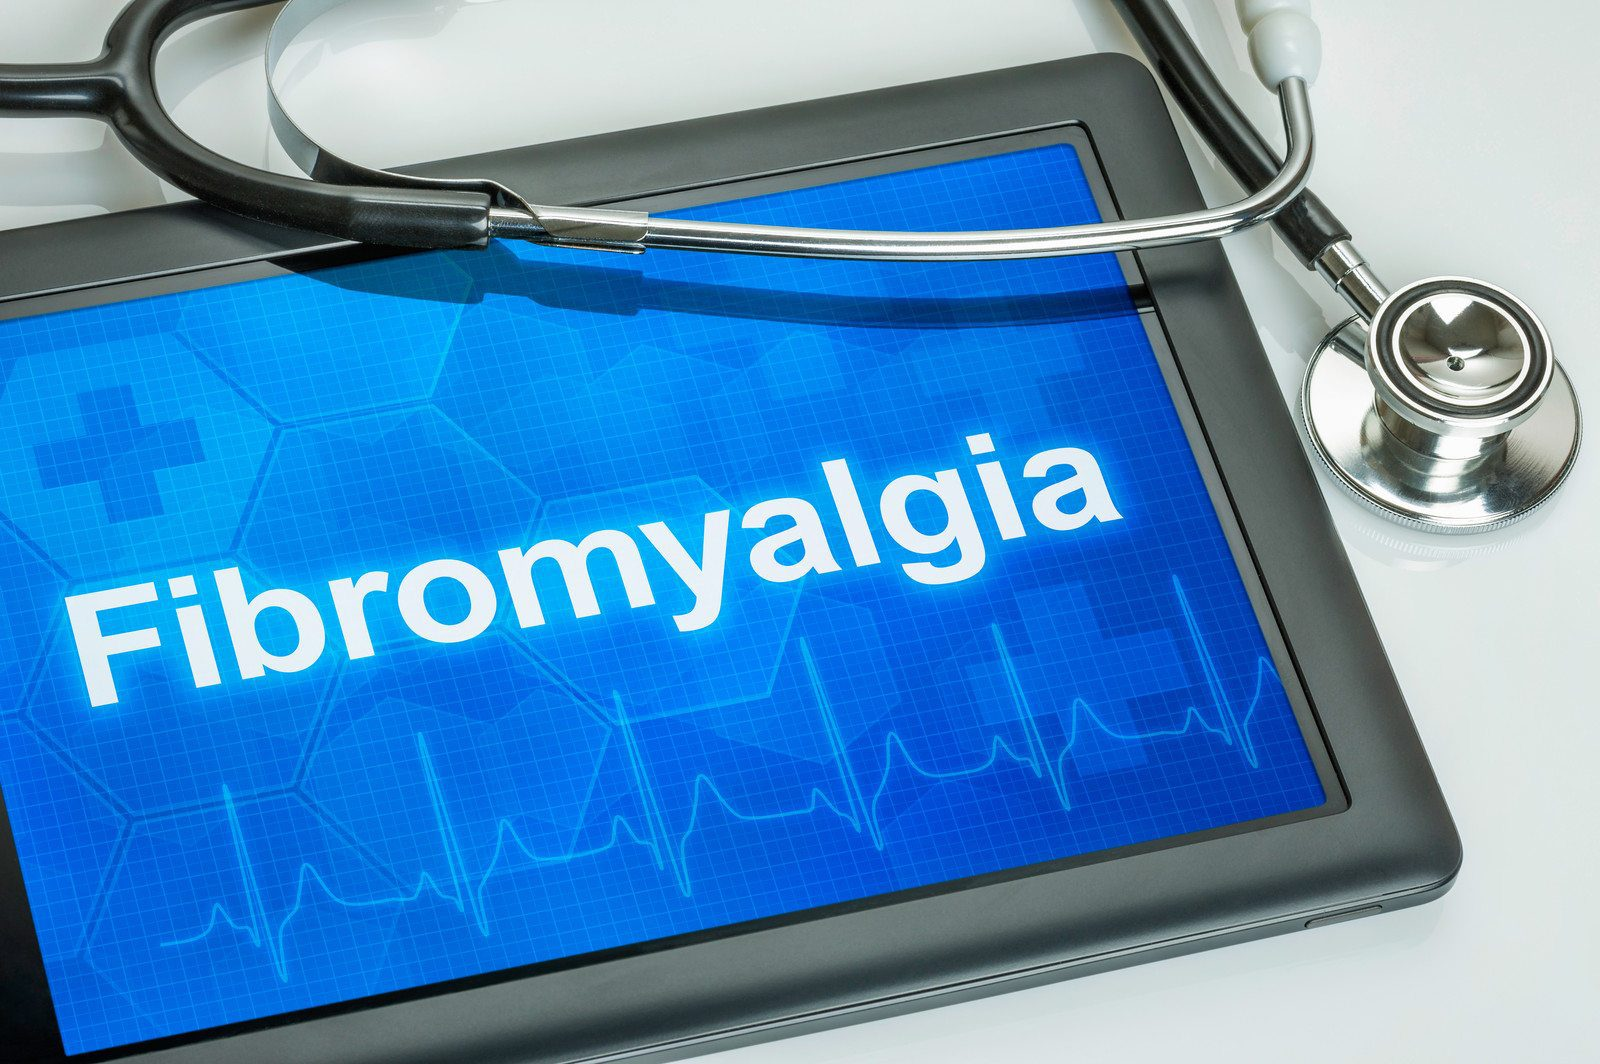 11860 Vista Del Sol, Ste. 128 Mental Health Professionals Can Help with Fibromyalgia El Paso, Texas